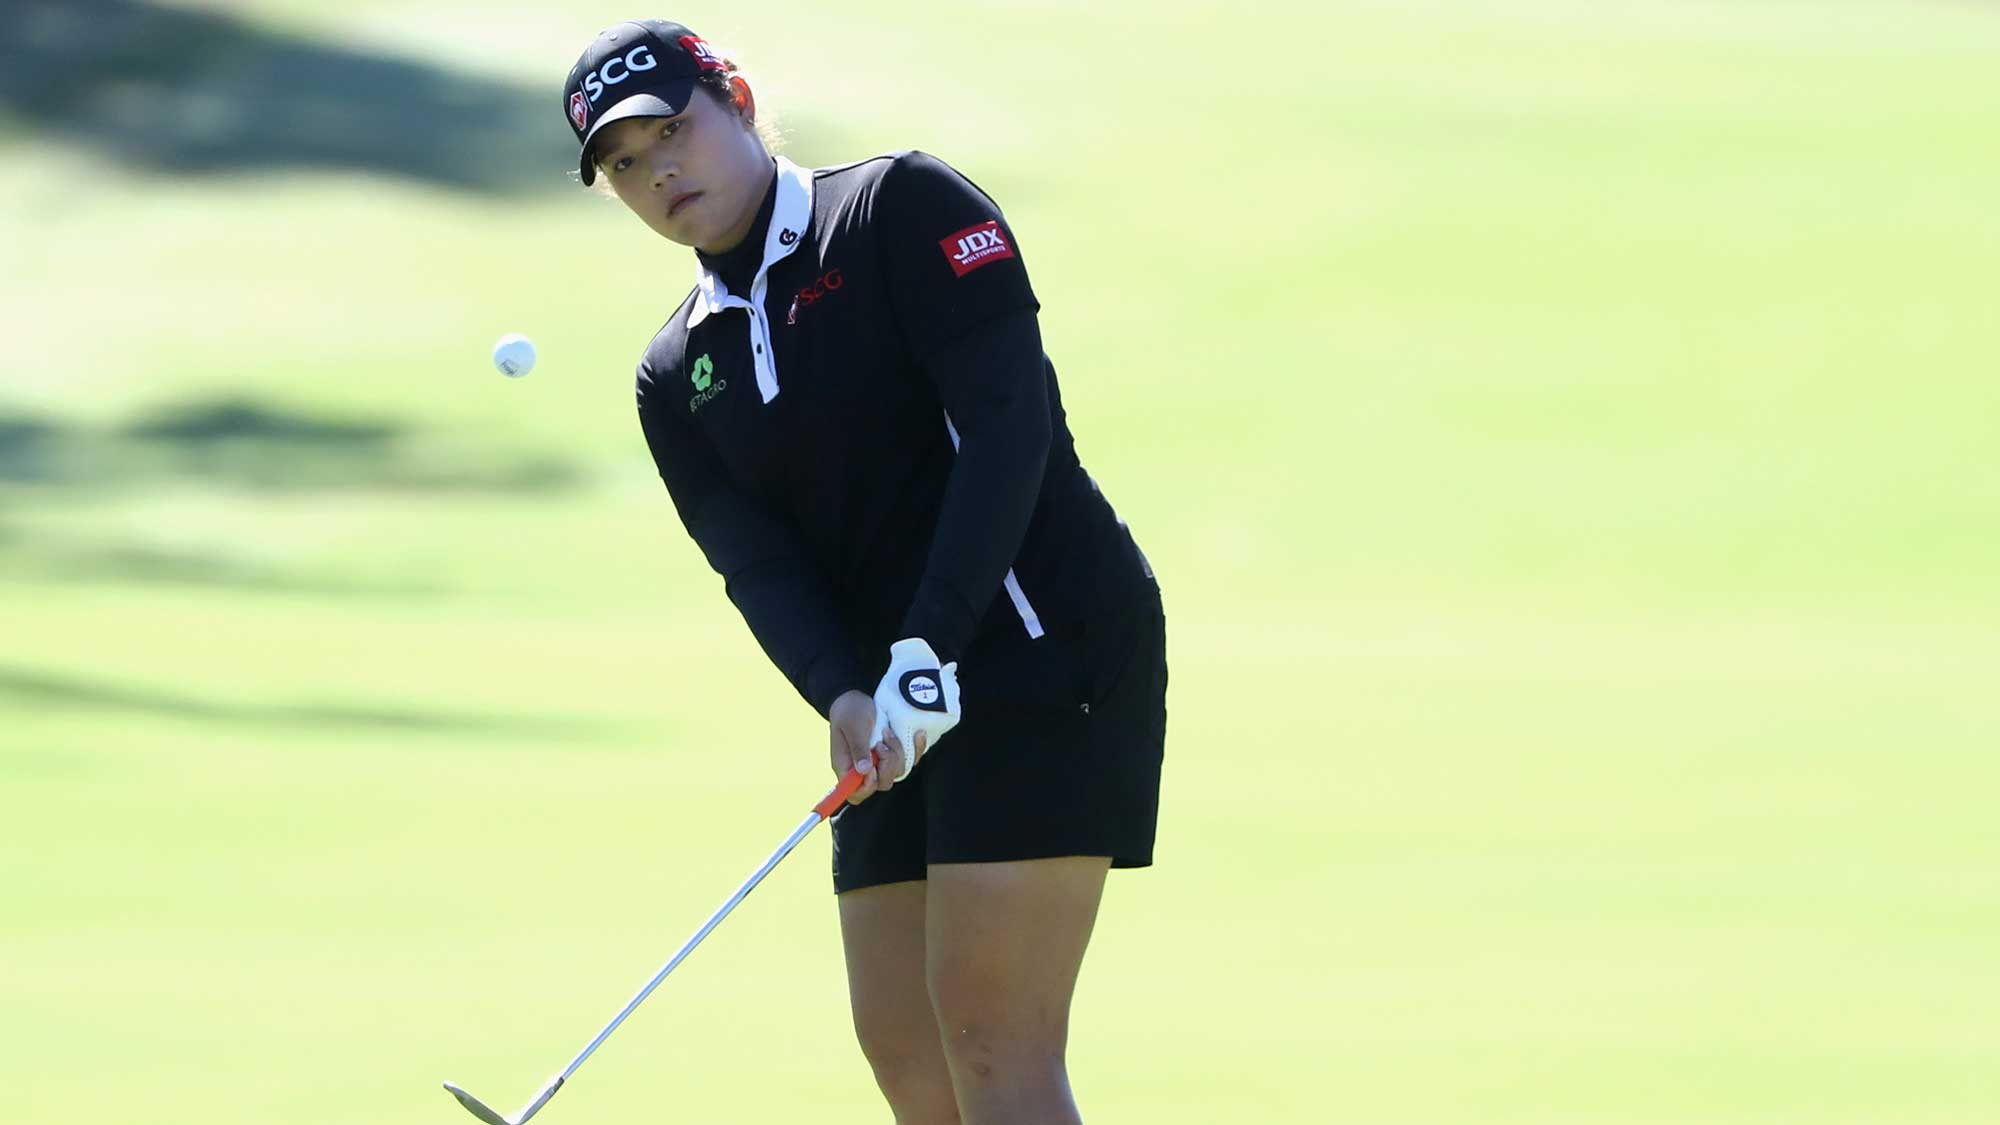 Ariya Jutanugarn of Thailand plays a shot on the second hole during the final round of the CME Group Tour Championship